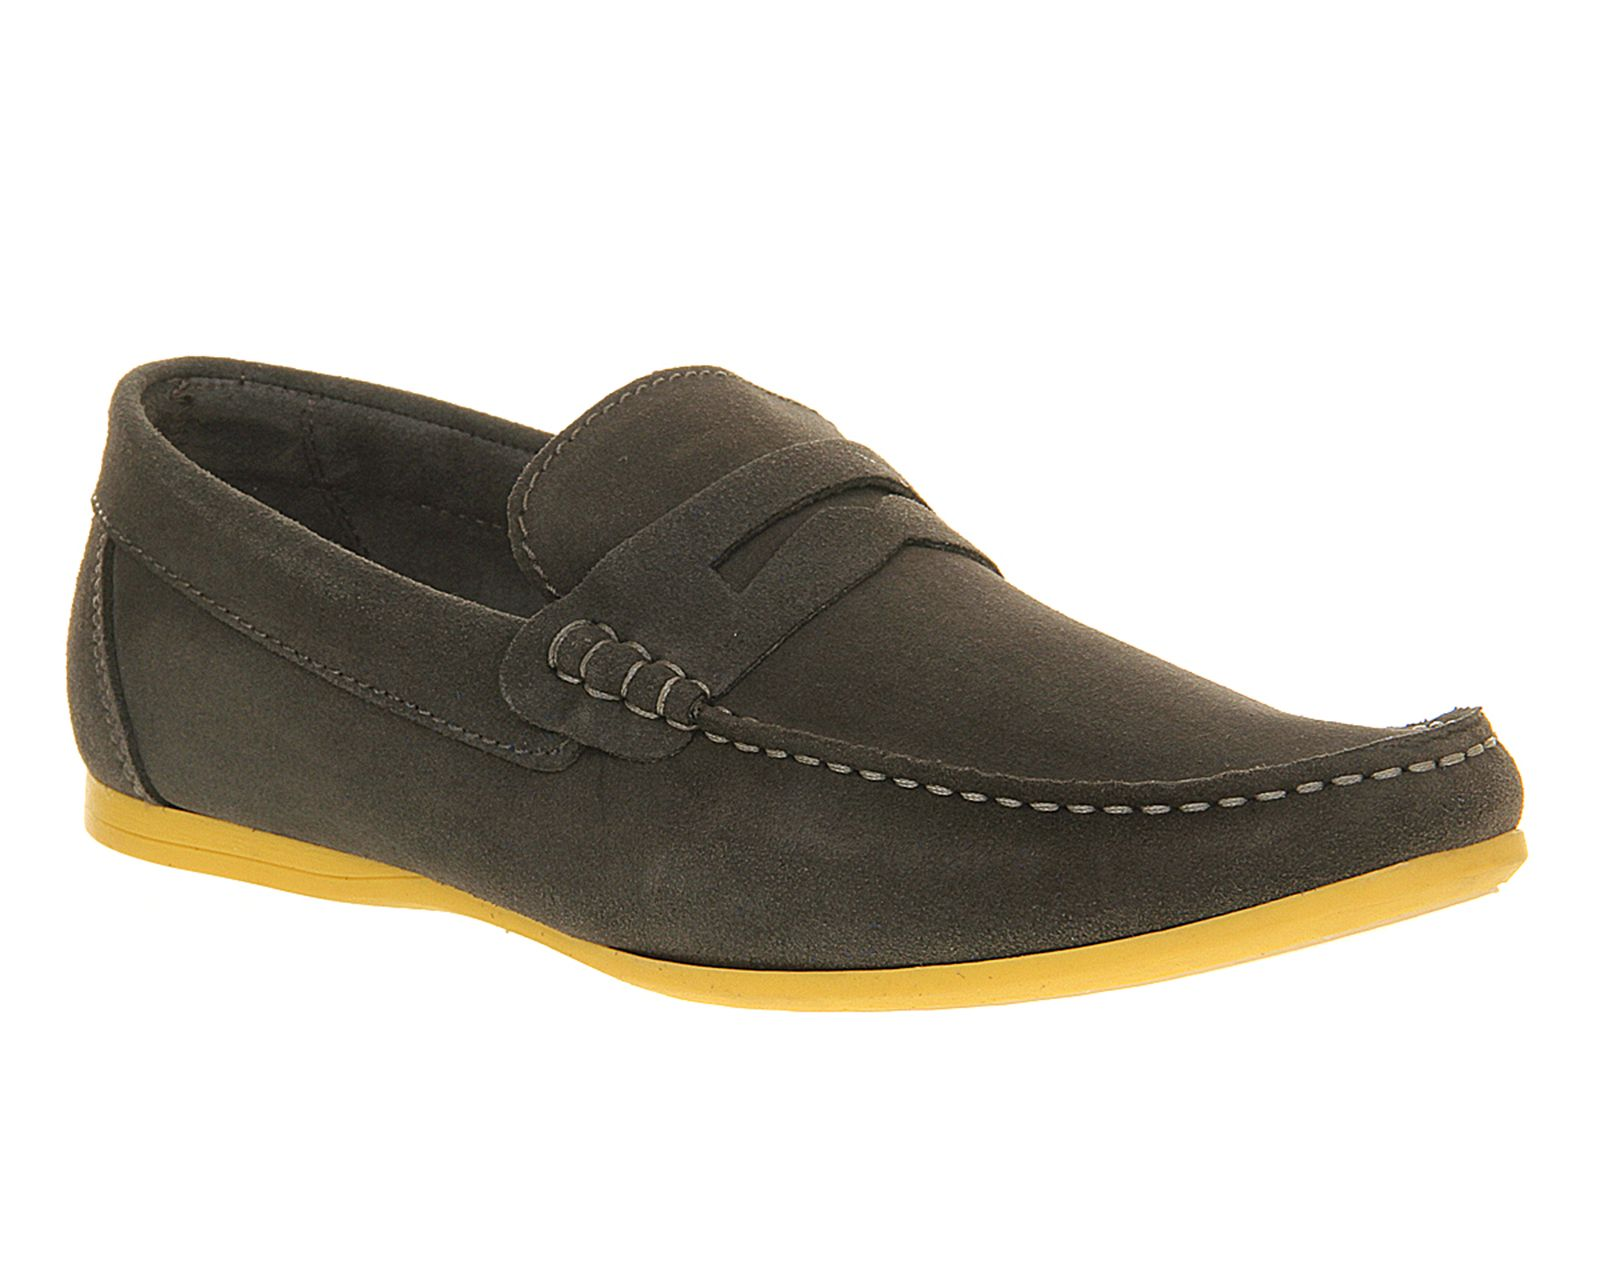 064eb507636 Ask the Missus Orlando Penny Loafer Grey Suede Yellow Sole - Casual ...